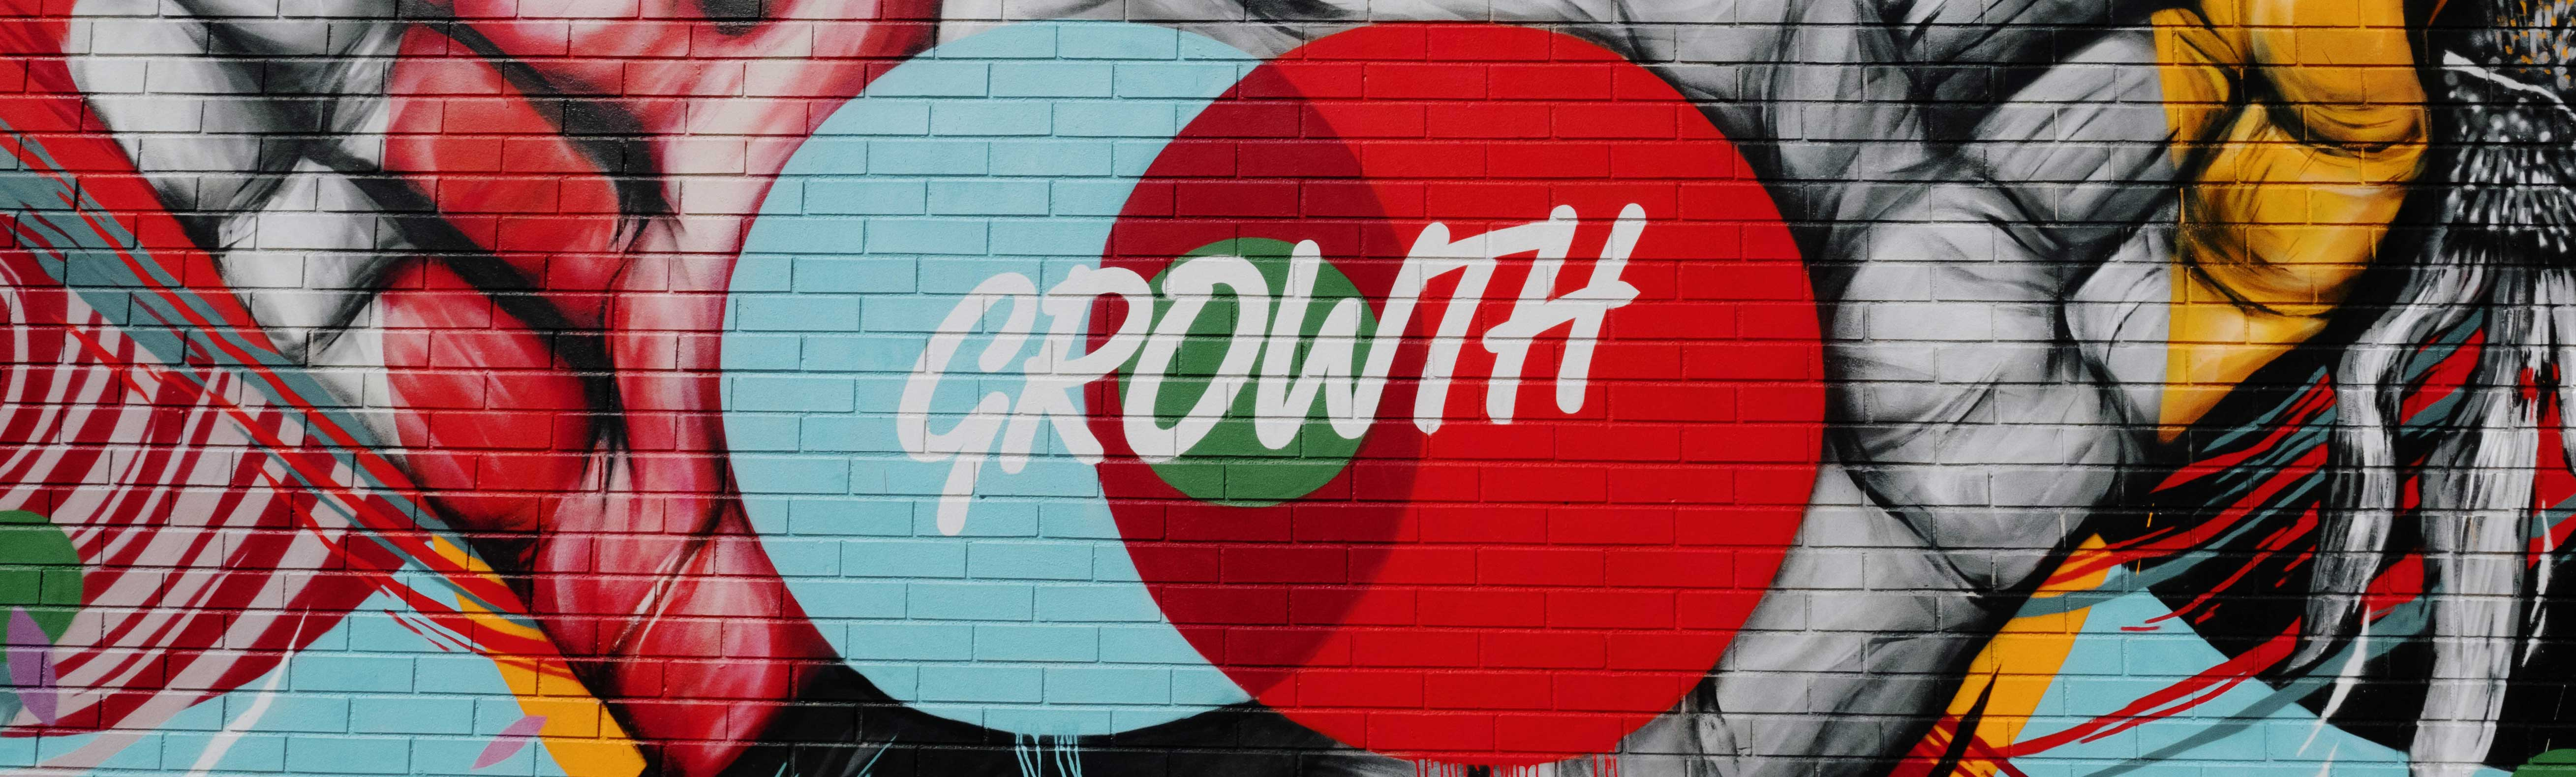 "Graffiti Art with words ""Growth"" in Detroit, Michigan"